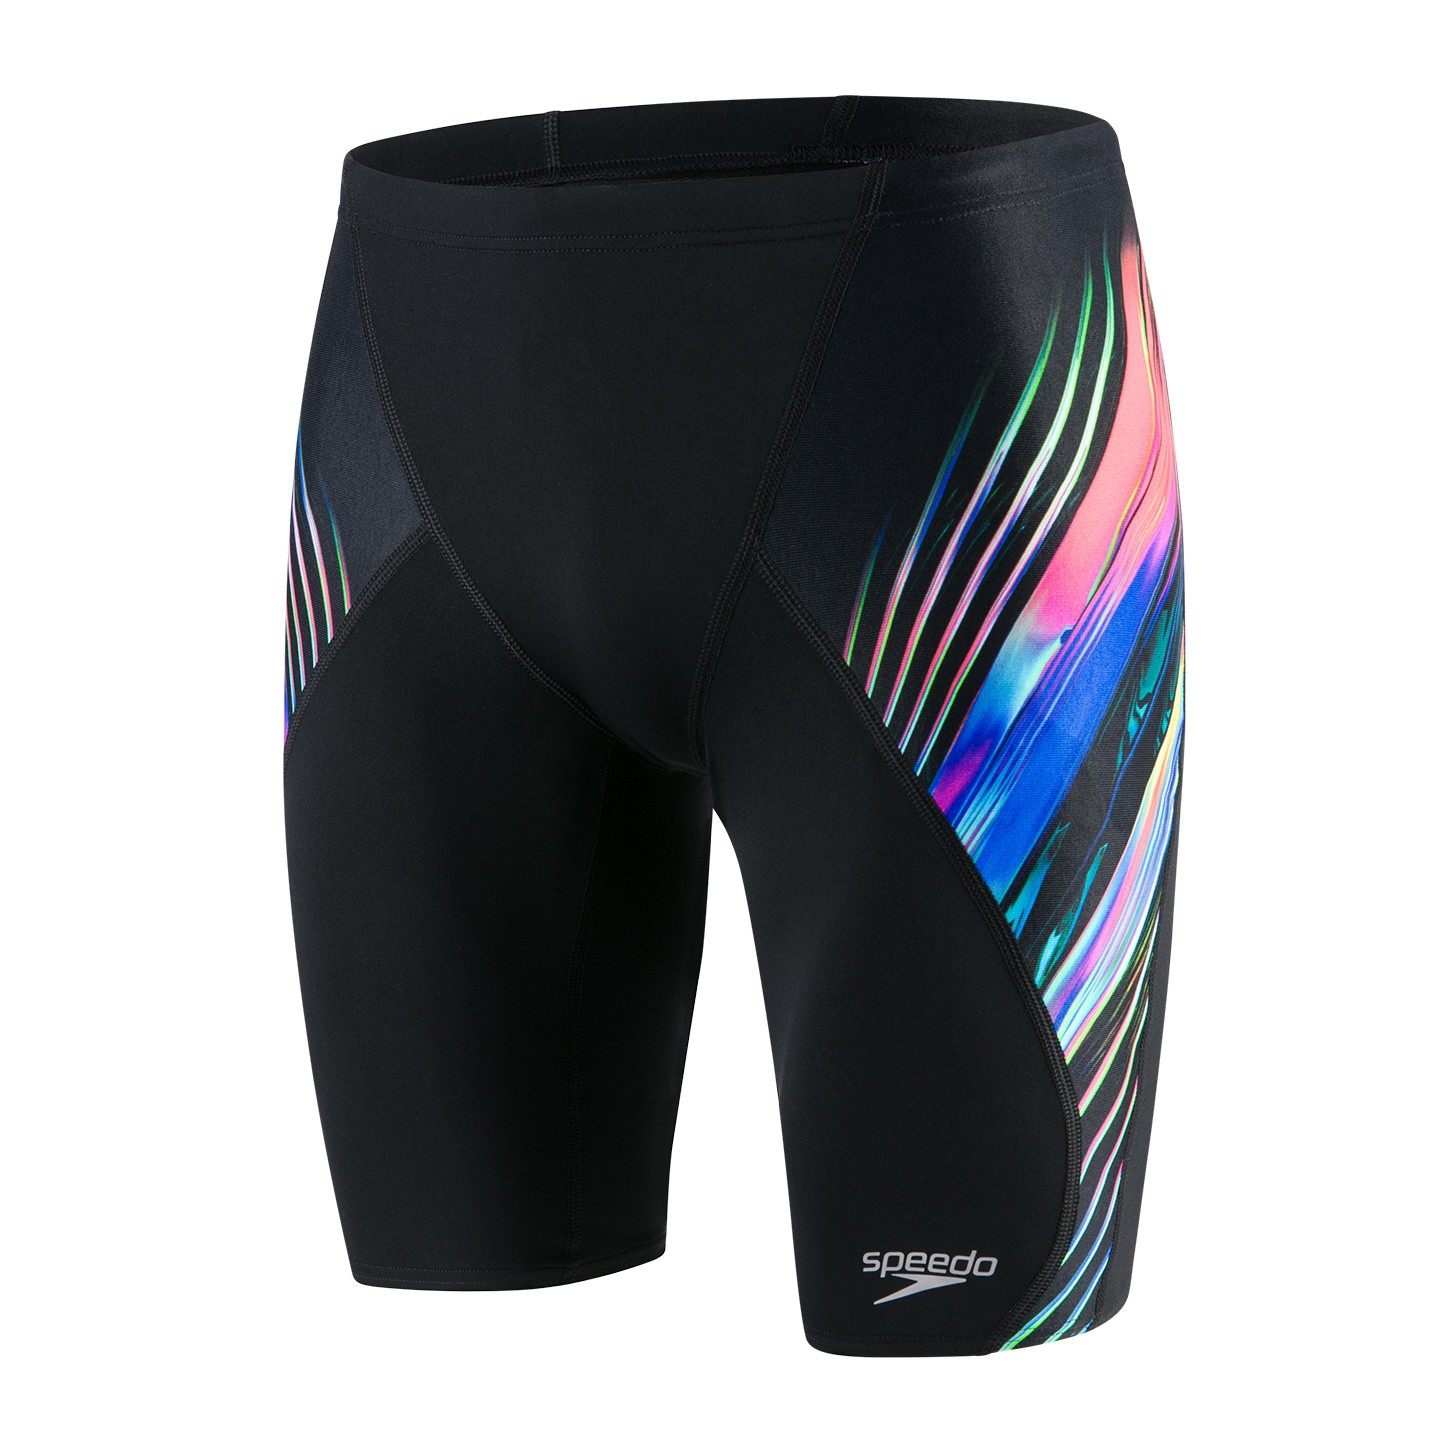 Speedo jammer Placem Dig bla/red